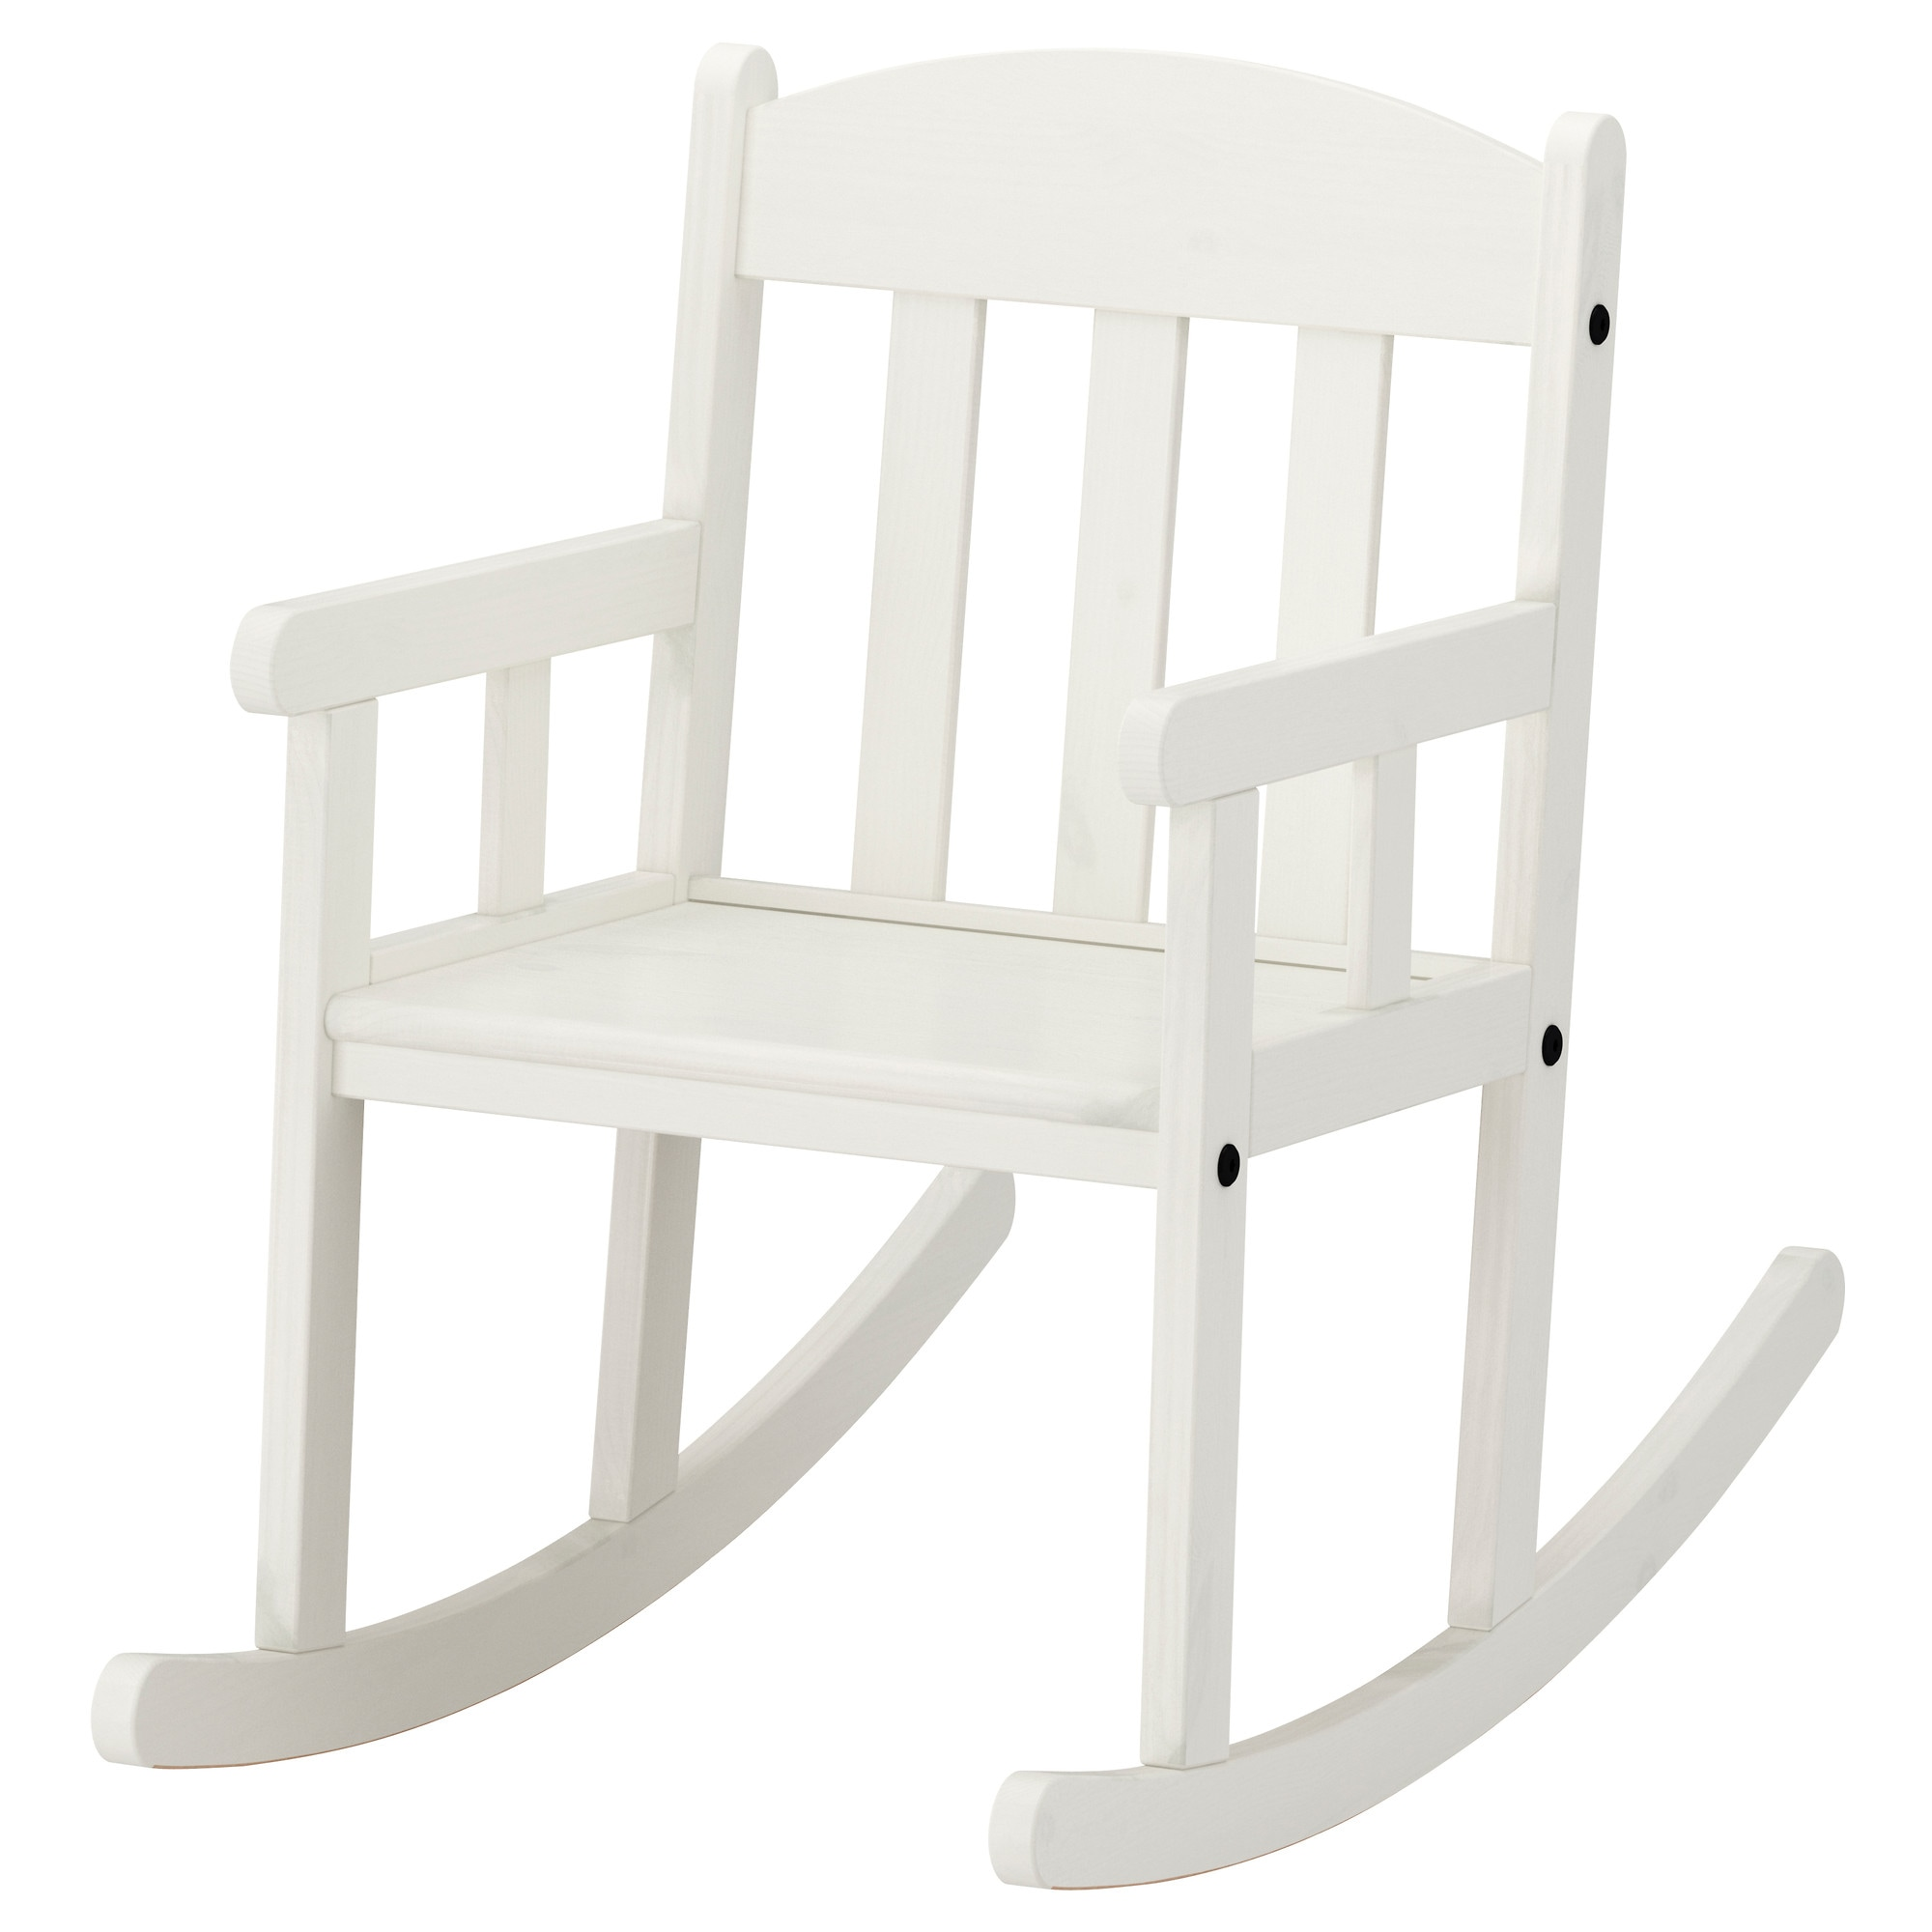 Great SUNDVIK Childrens Rocking Chair   IKEA